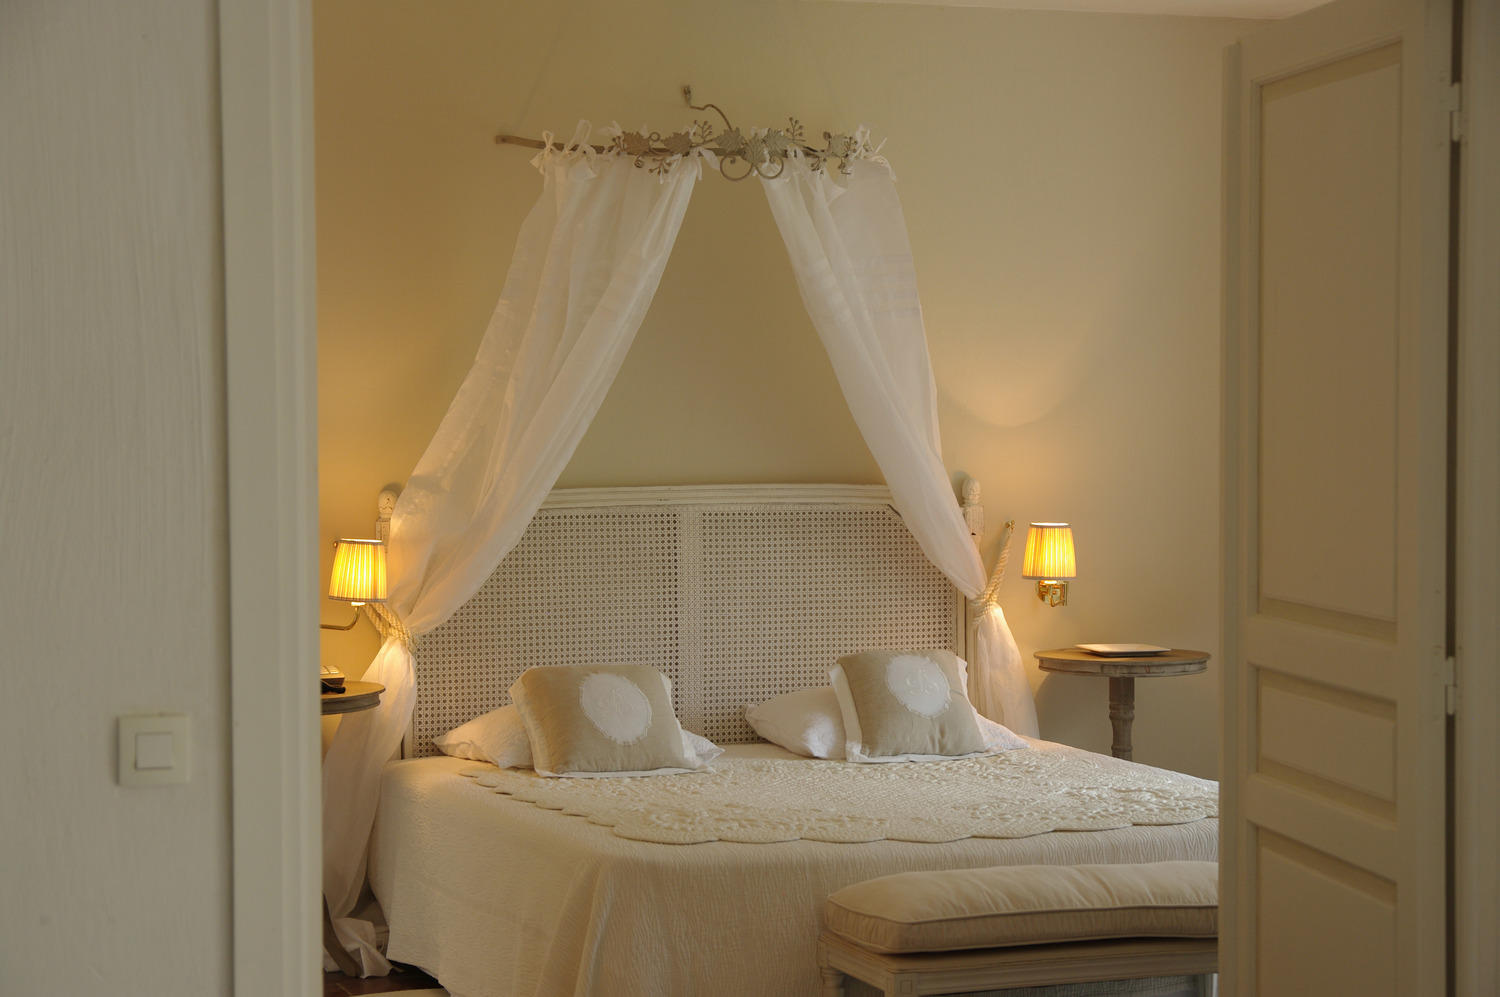 Luxury boutique hotel Mas de Chastelas 5 stars Saint-Tropez France room